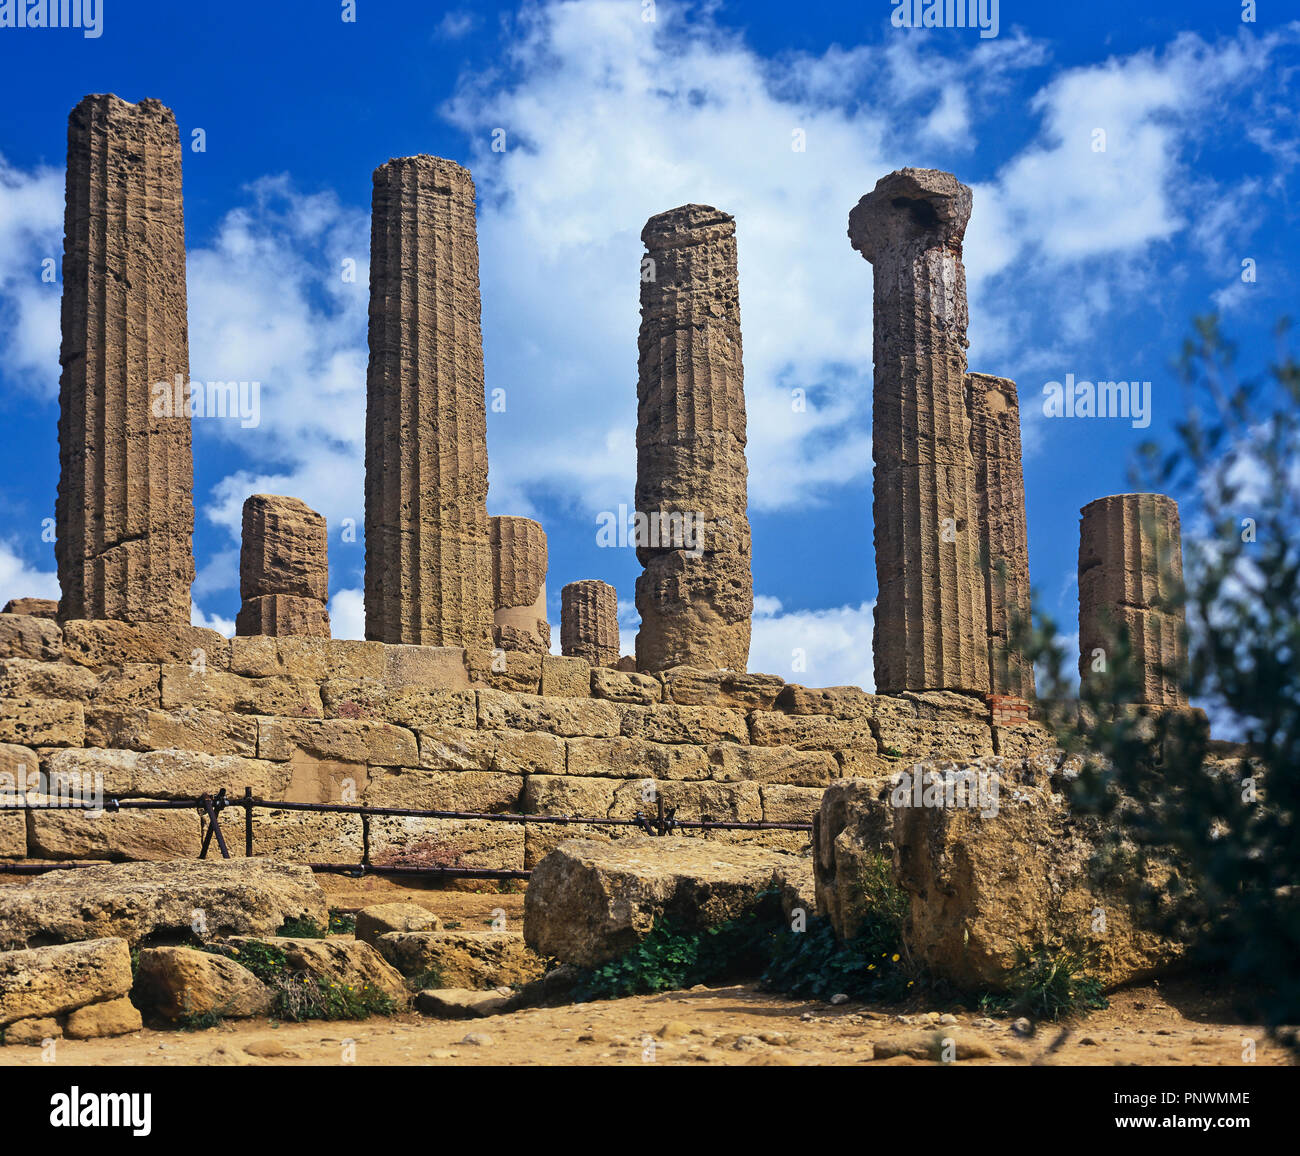 Greek Temple of Hera Lacinia (orJuno) - 5th century BC. Valley of the temples. Agrigento. Sicily. Italy. Europe - Stock Image